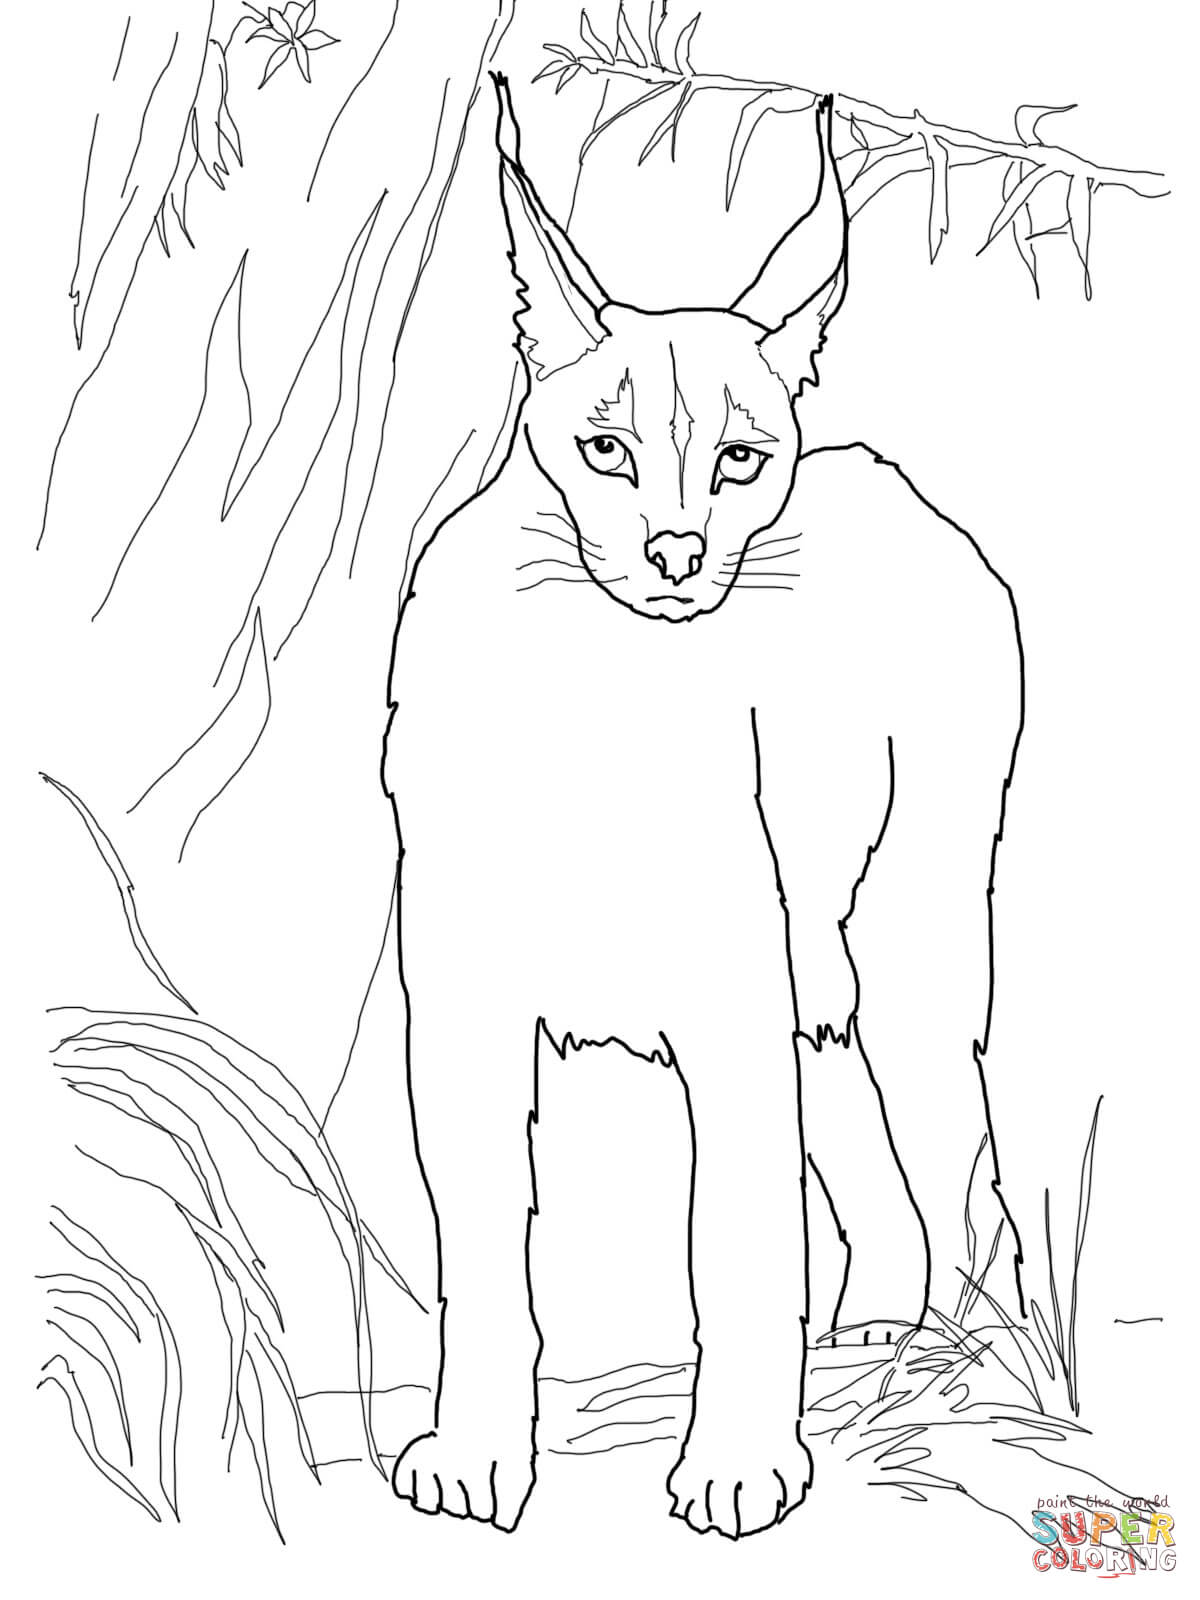 caracal coloring pages coloring home Big Cat Coloring Pages  Caracal Coloring Page